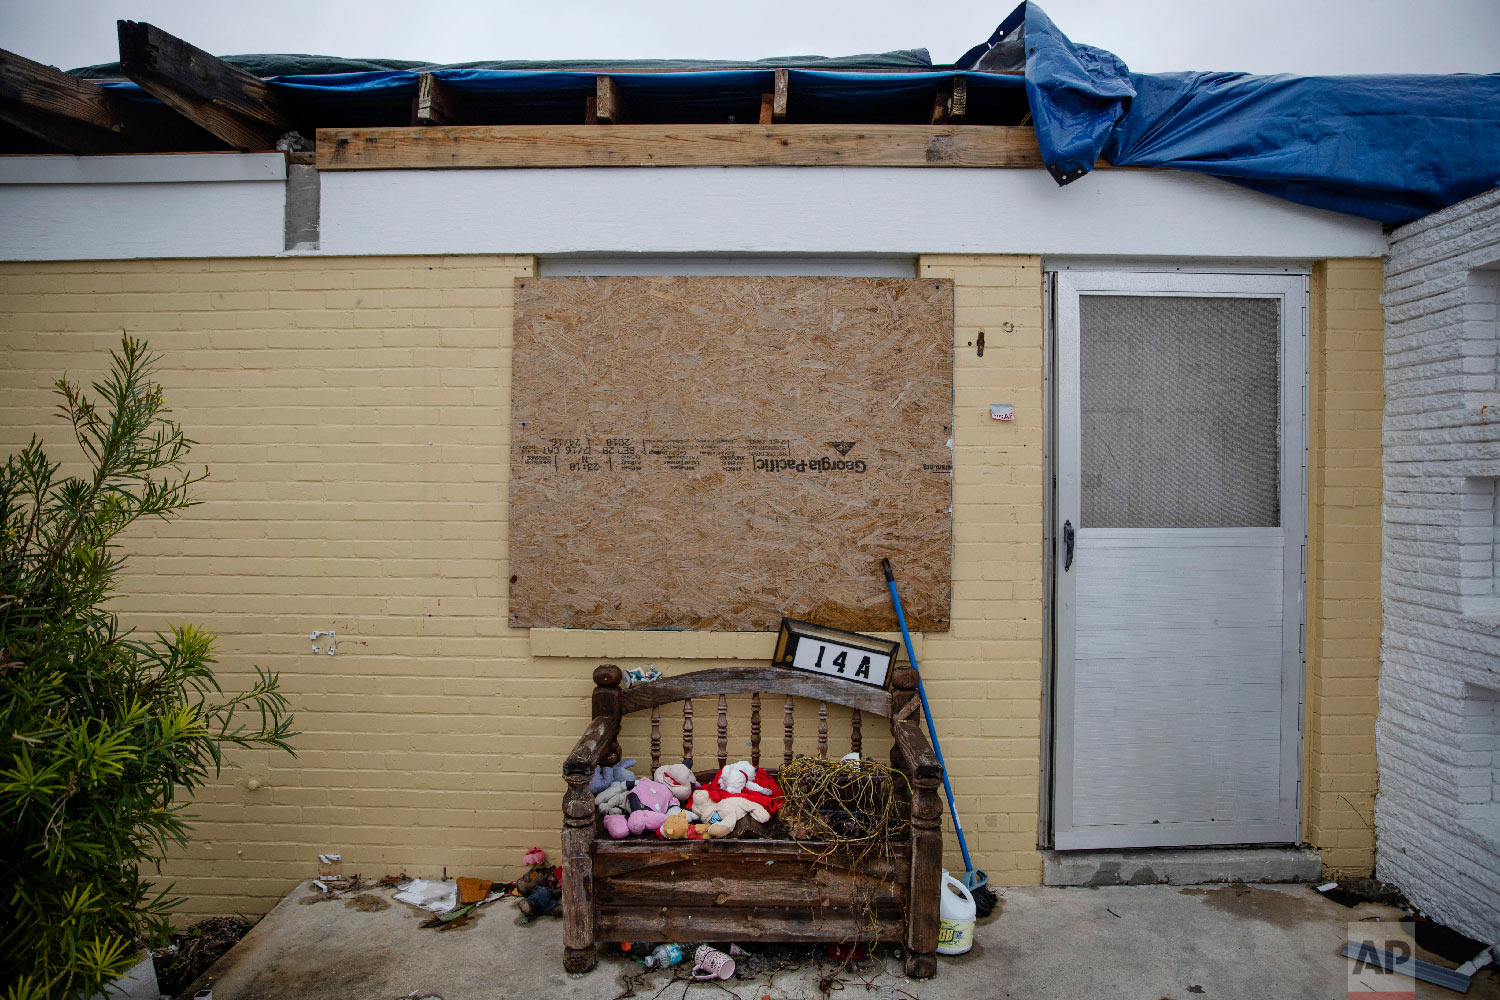 Stuffed animals sit outside a boarded up housing development damaged from Hurricane Michael in Panama City, Fla, Thursday, Jan. 24, 2019. (AP Photo/David Goldman)